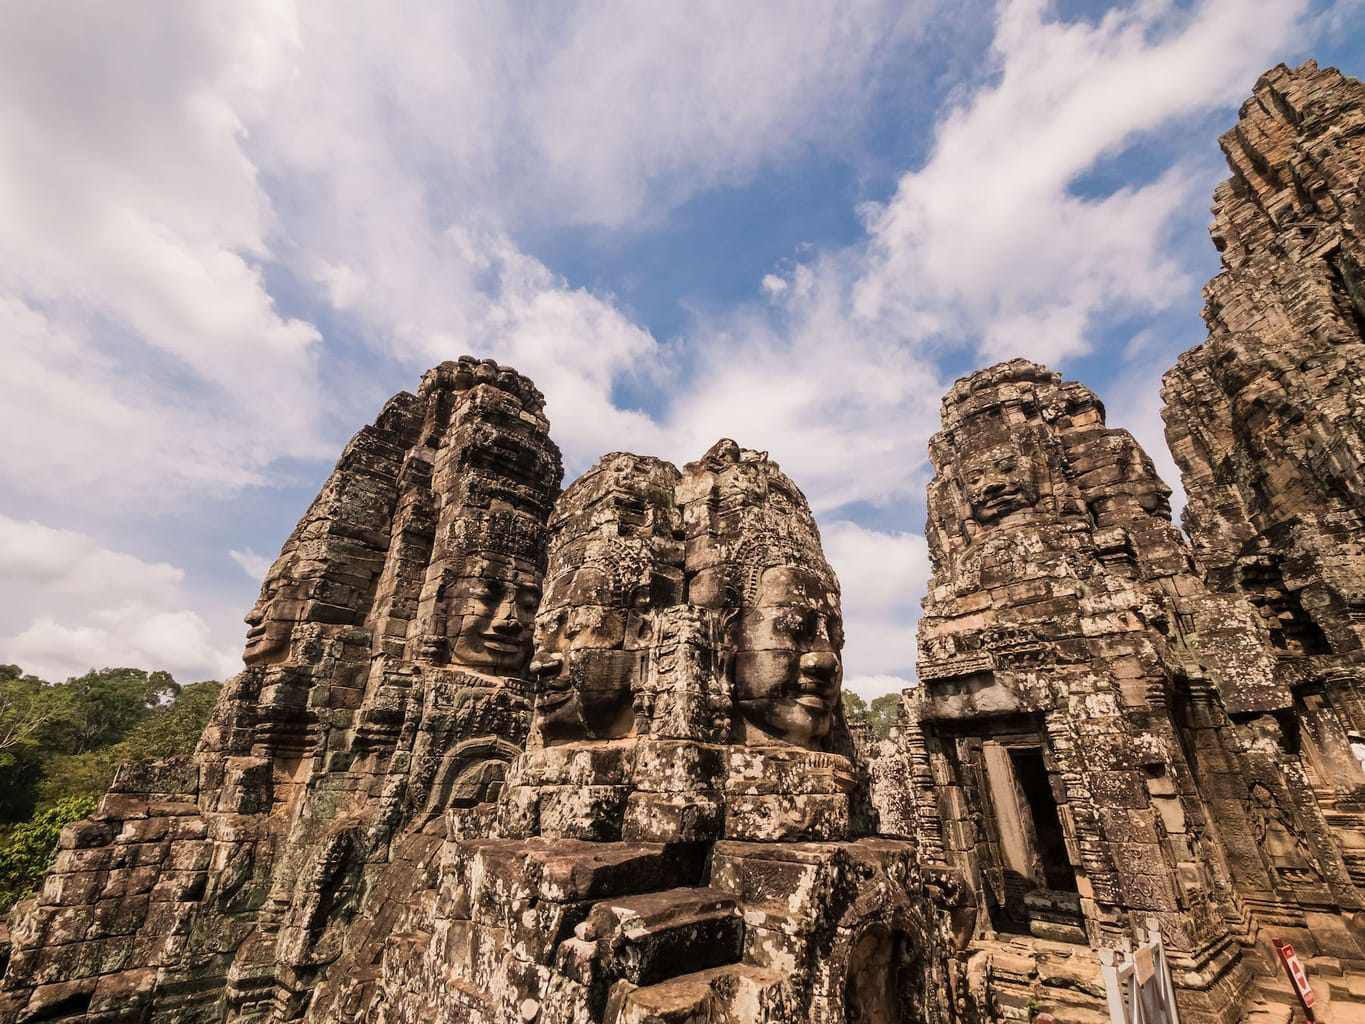 Some of the many smiling faces at the Bayon